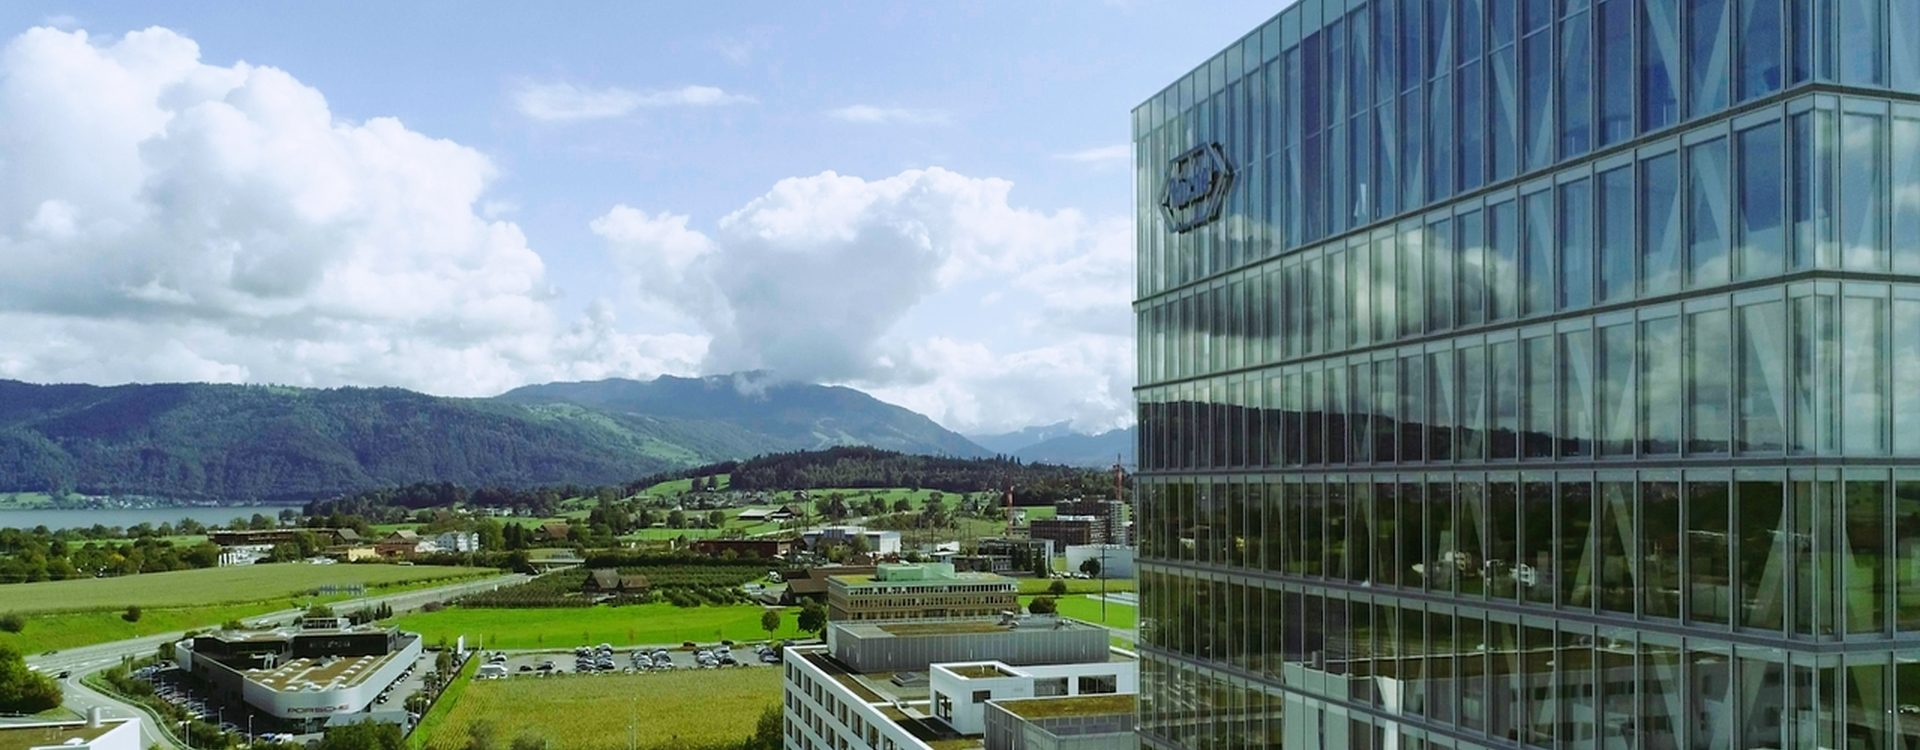 Roche - Main site of global Diagnostics and domicile of the Swiss